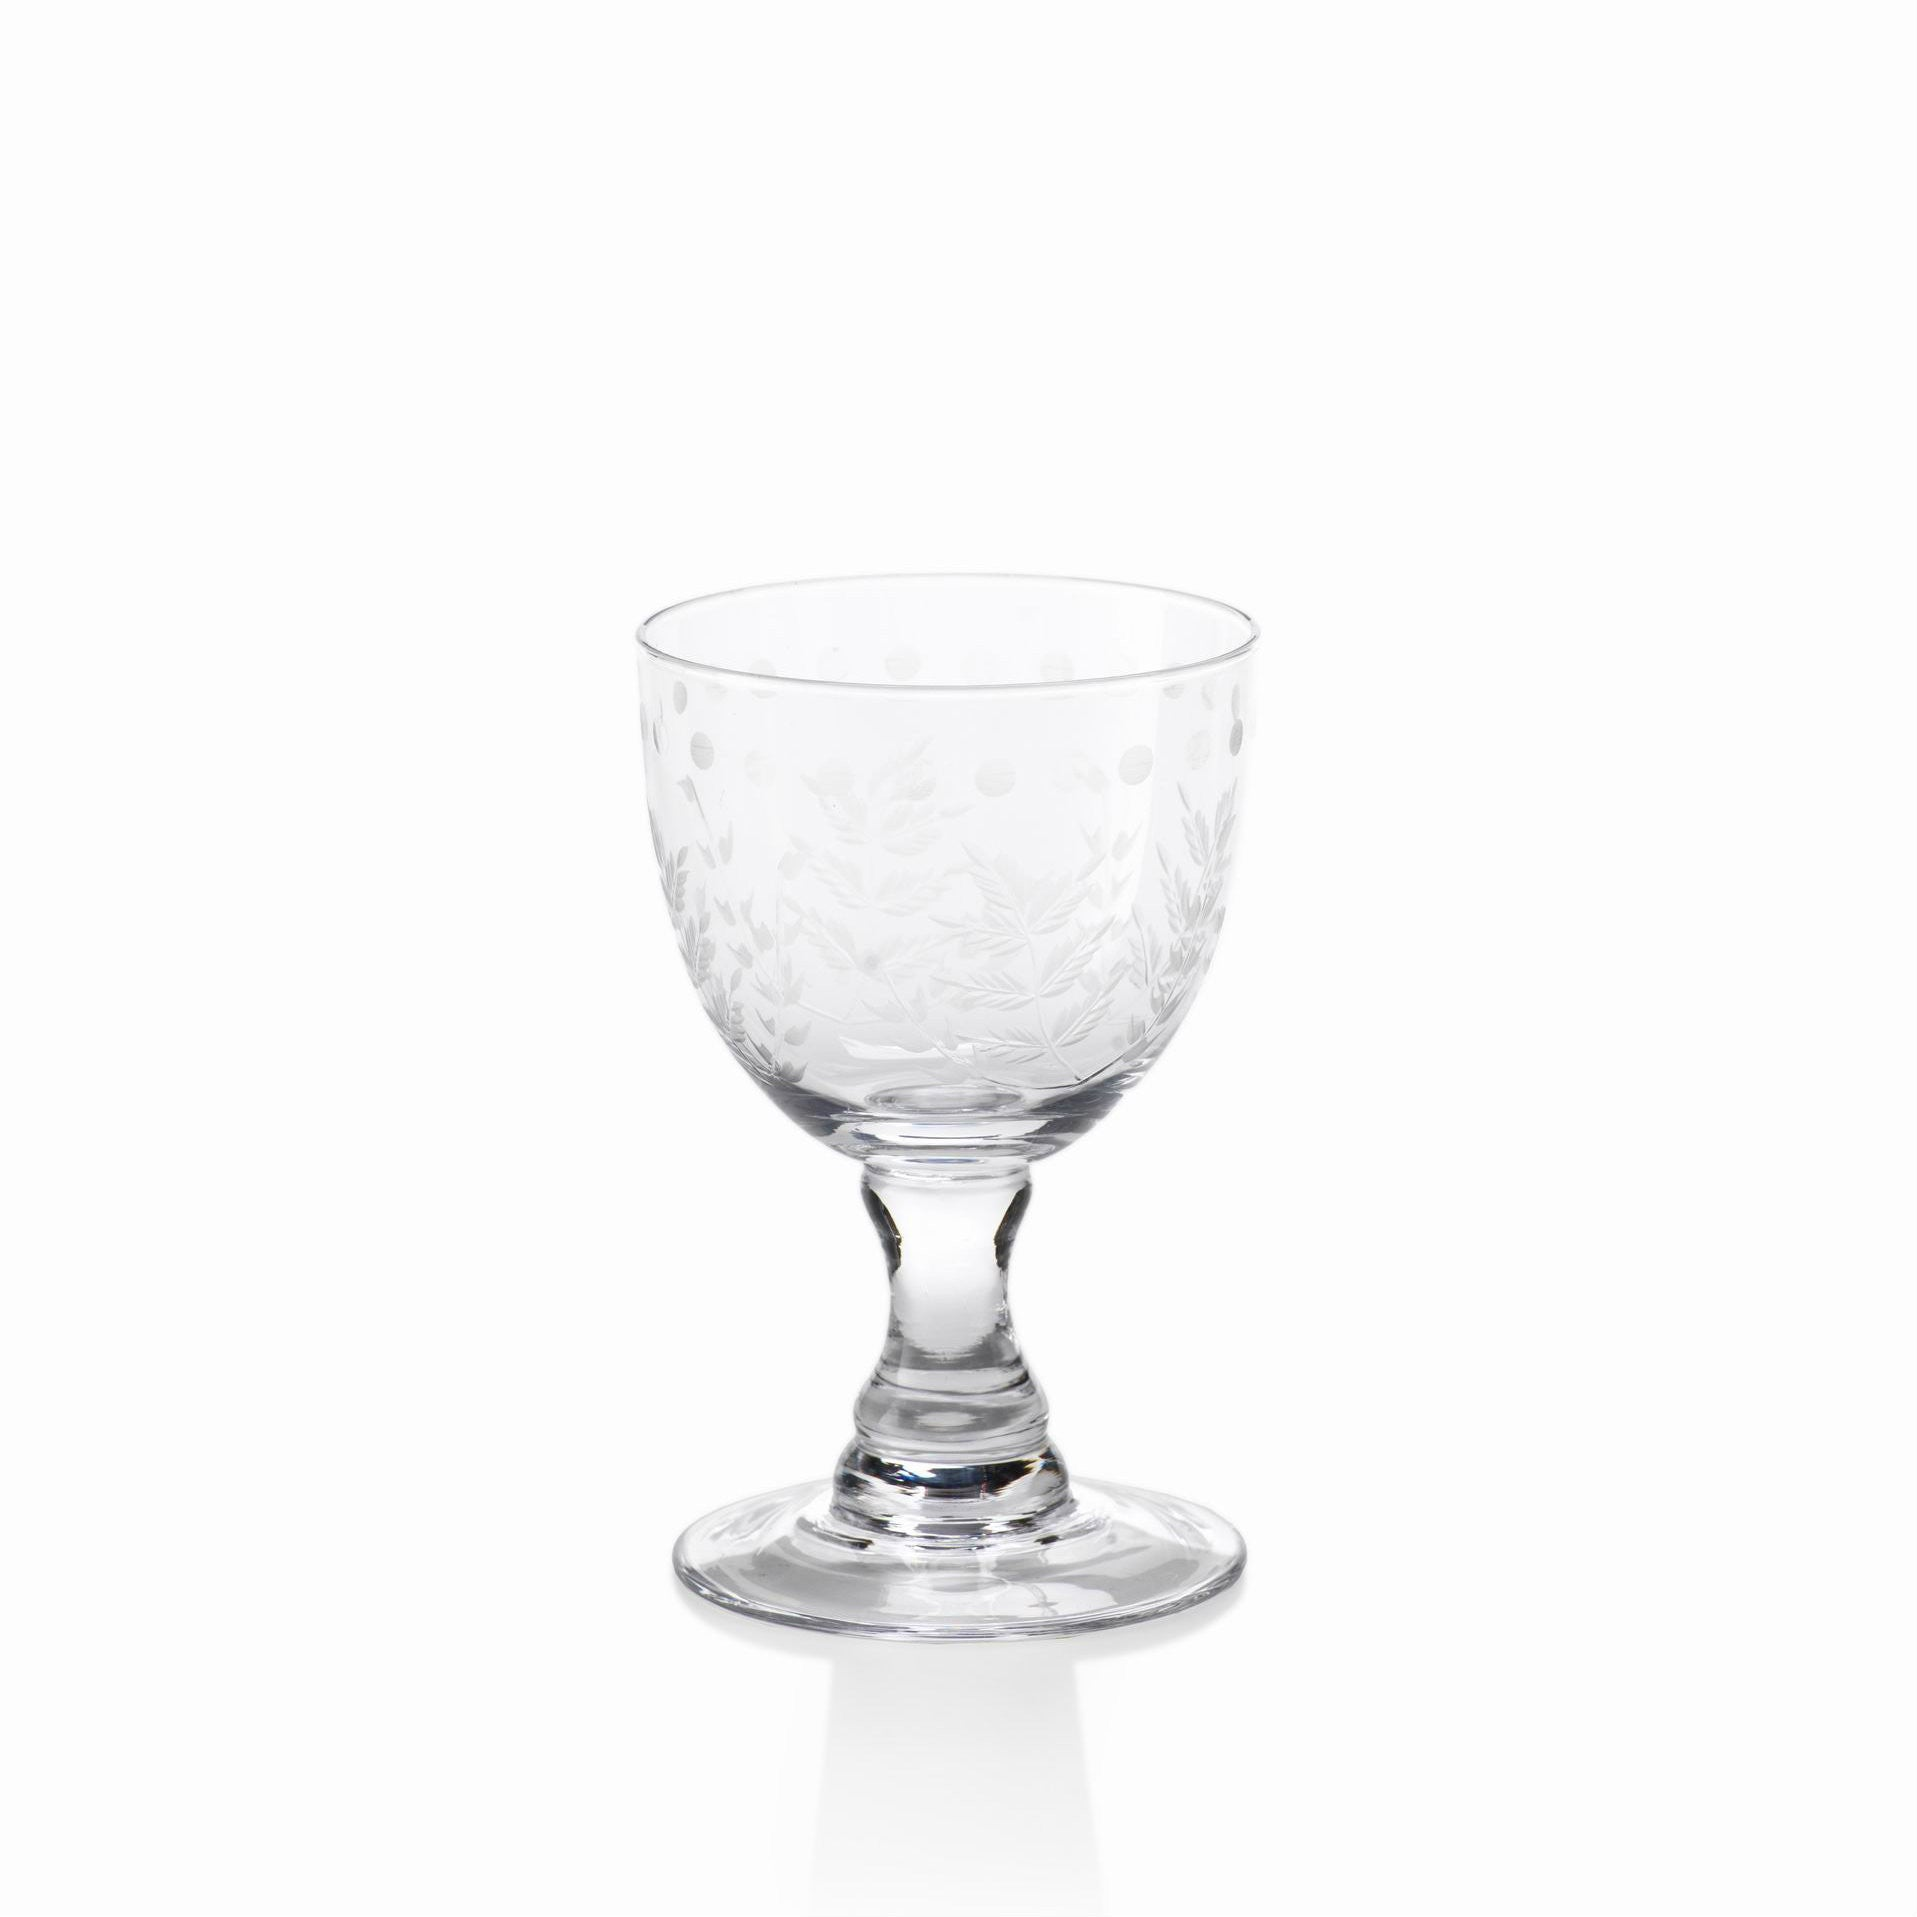 Spring Leaves Glassware - Set of 4 - White Wine Glasses - CARLYLE AVENUE - 3